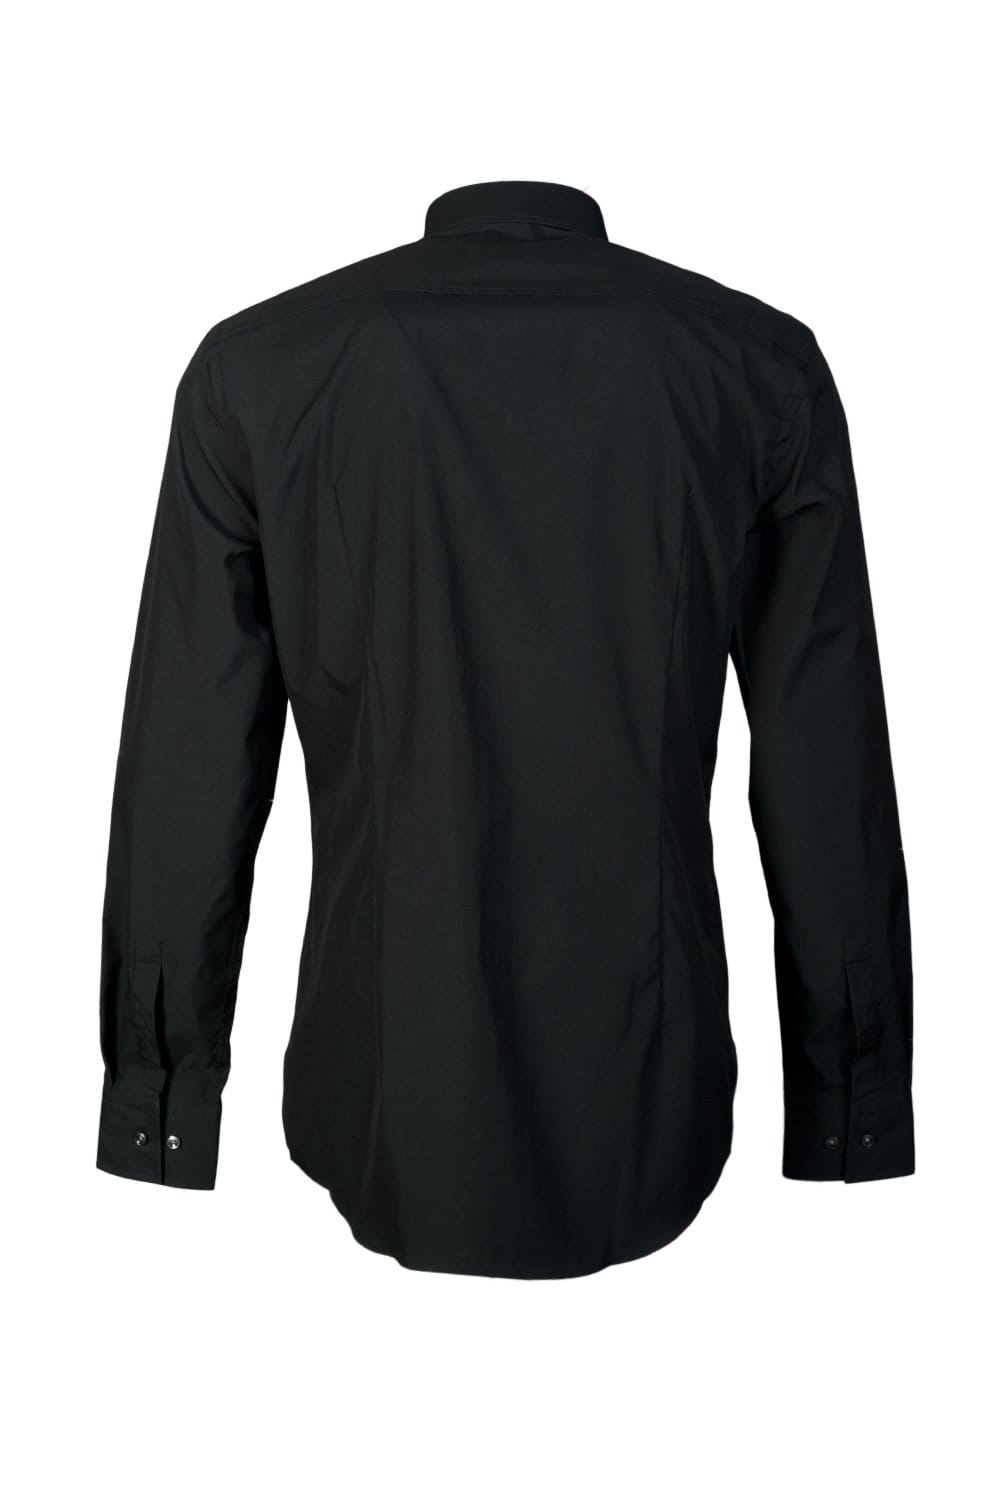 hugo boss black stretch shirt in black and white philip